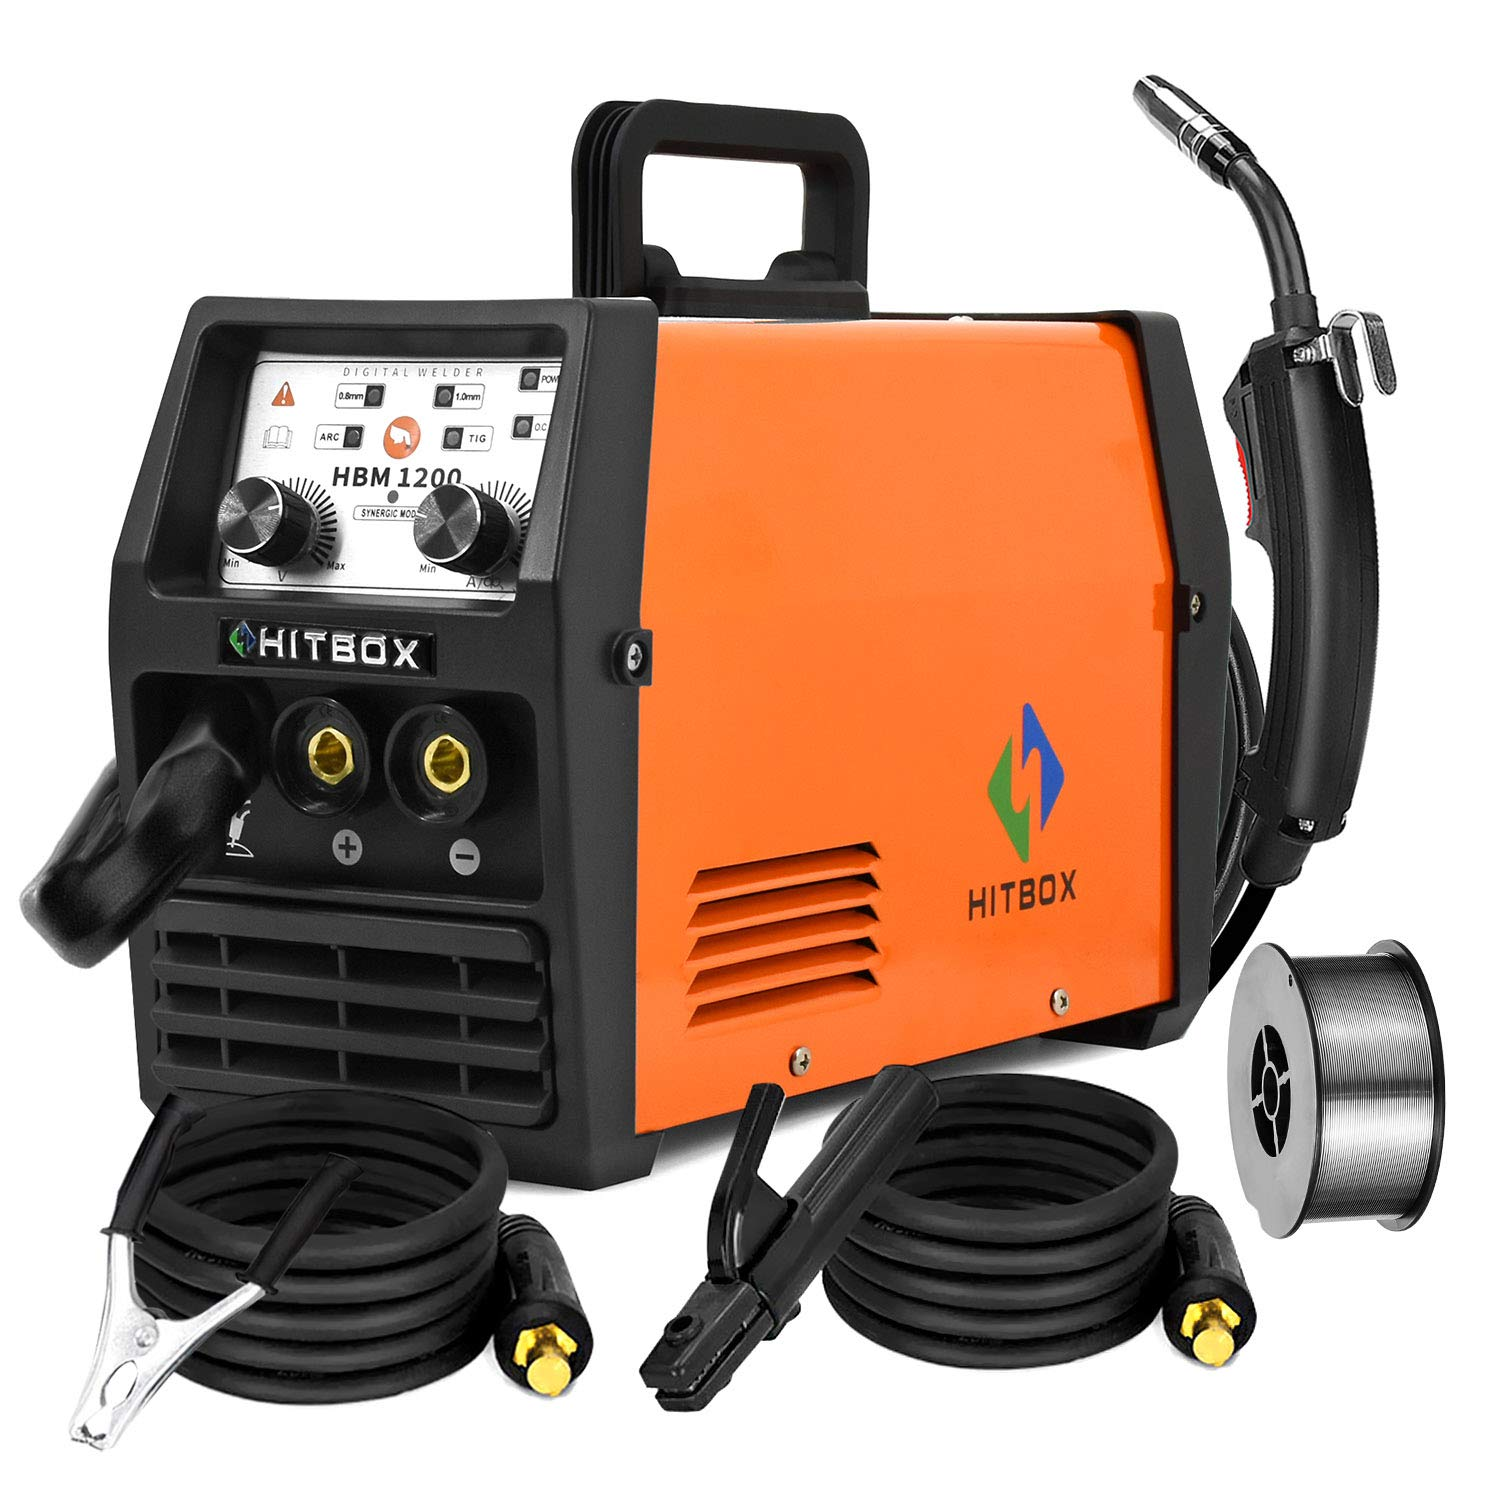 Hitbox Mig Welder Arc Lift Tig Mig Galess3 In 1 220v 120a No Gas Flux Core Wire Igbt Multi Function Welding Machine Model Hbm1200 Buy Online In Belarus At Belarus Desertcart Com Productid